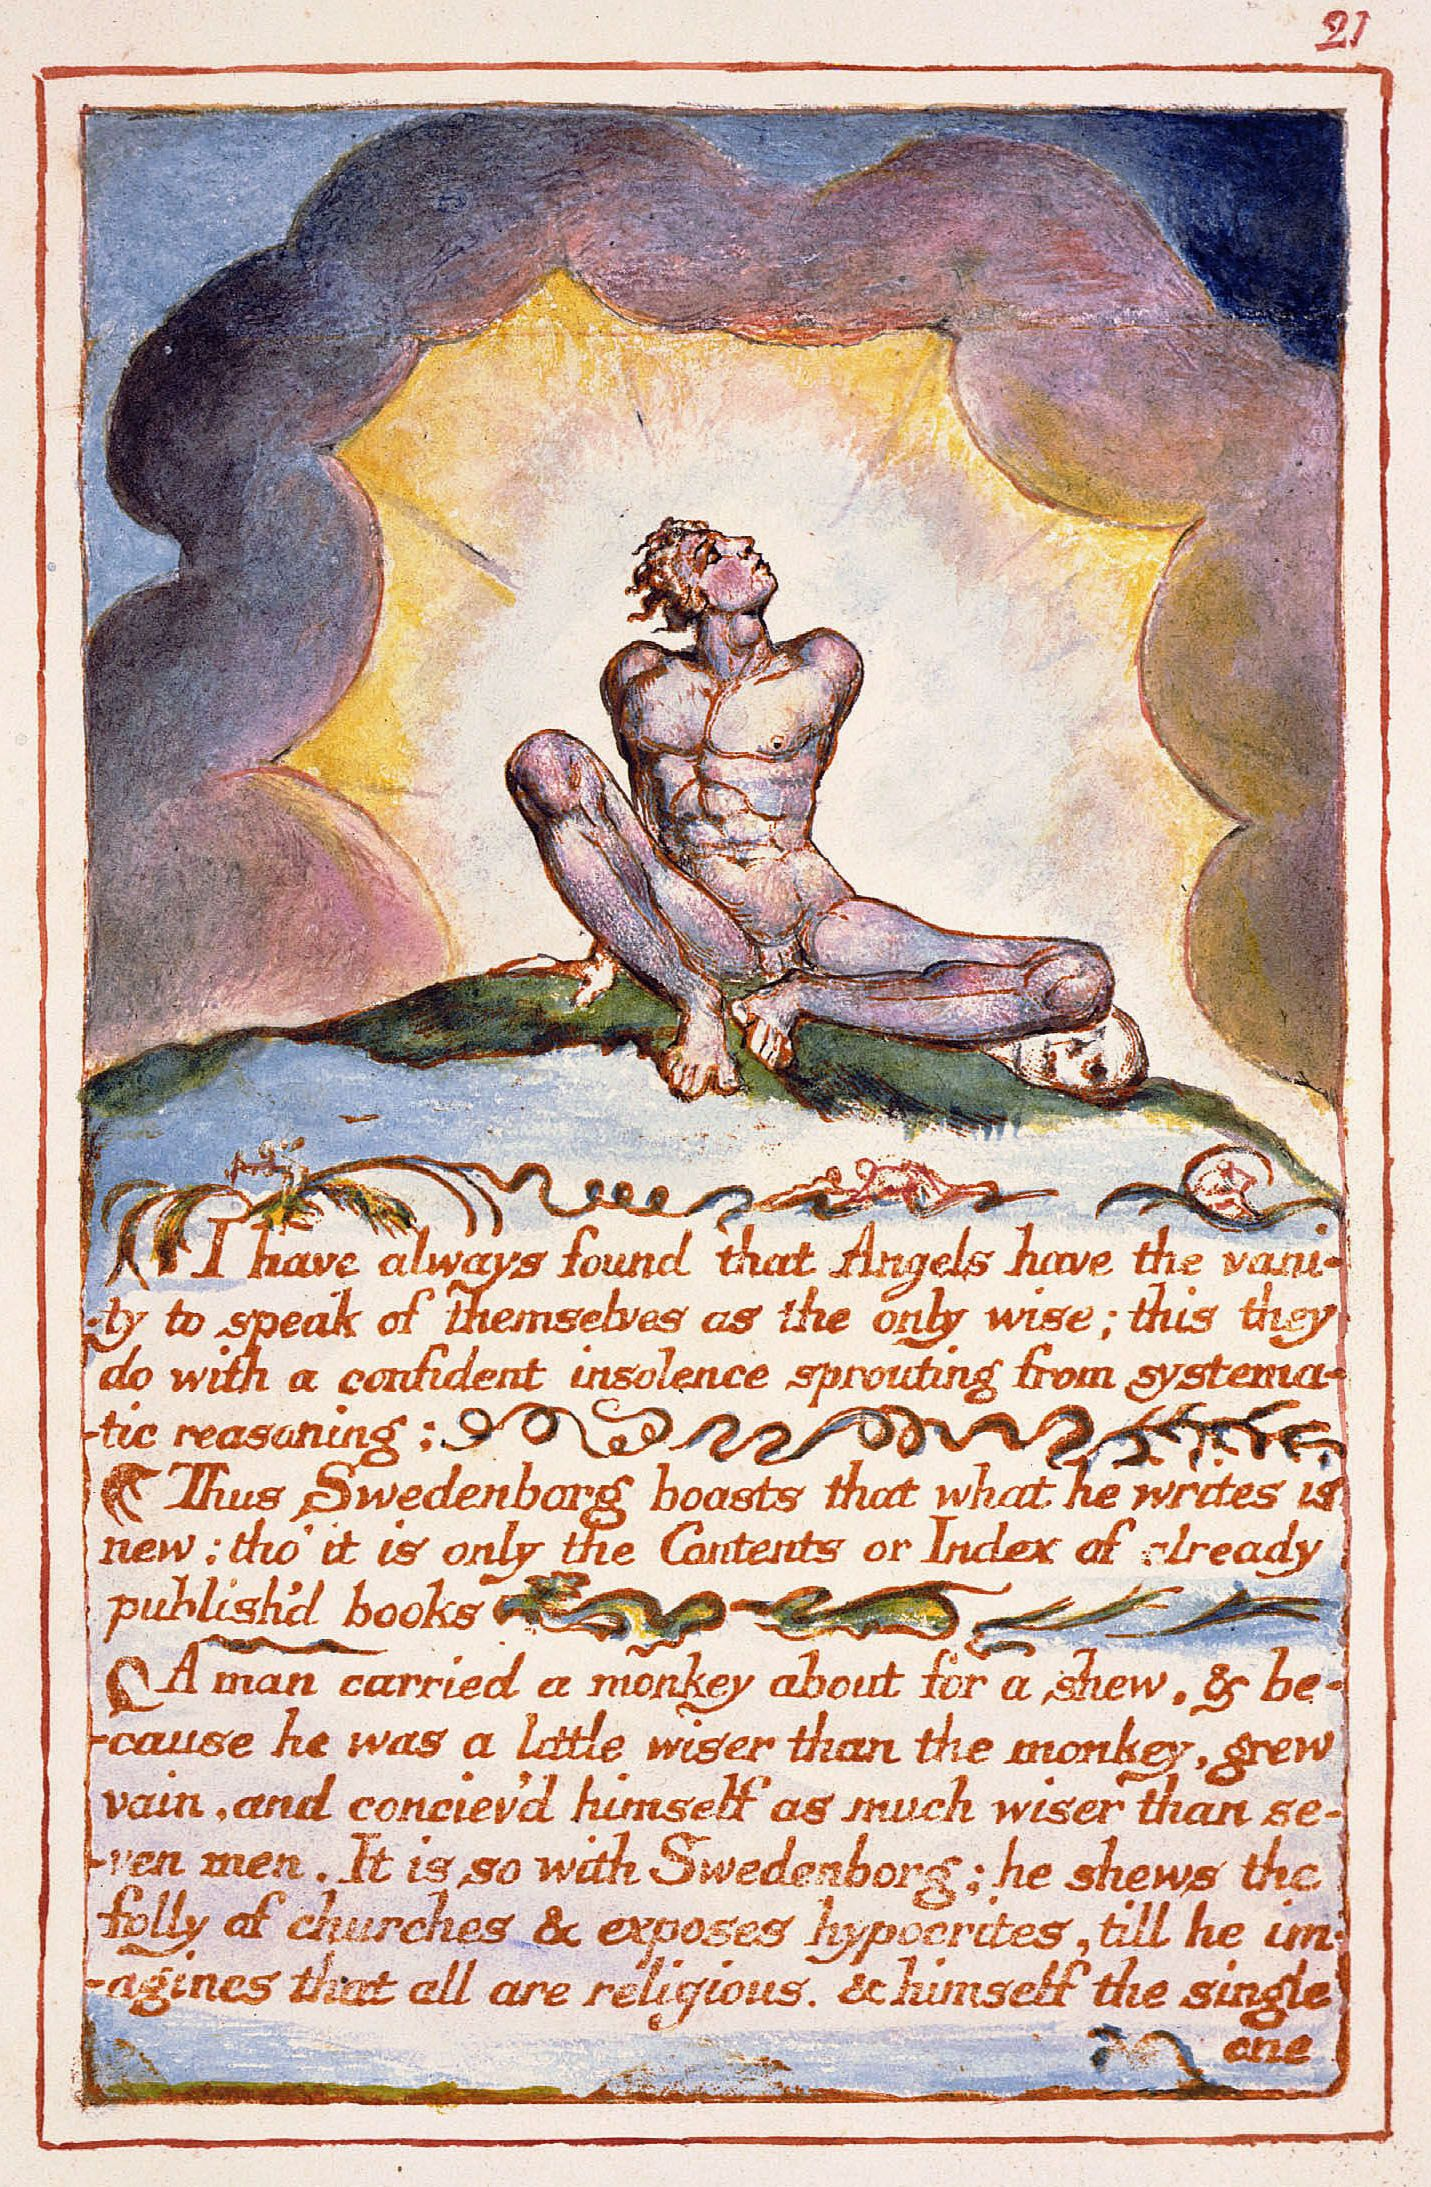 a comparison of william blakes compositions In the poem 'the lamb', i interpret that william blake discusses many points questioning creation comparison of theme betweeen william blakes poems the tiger.